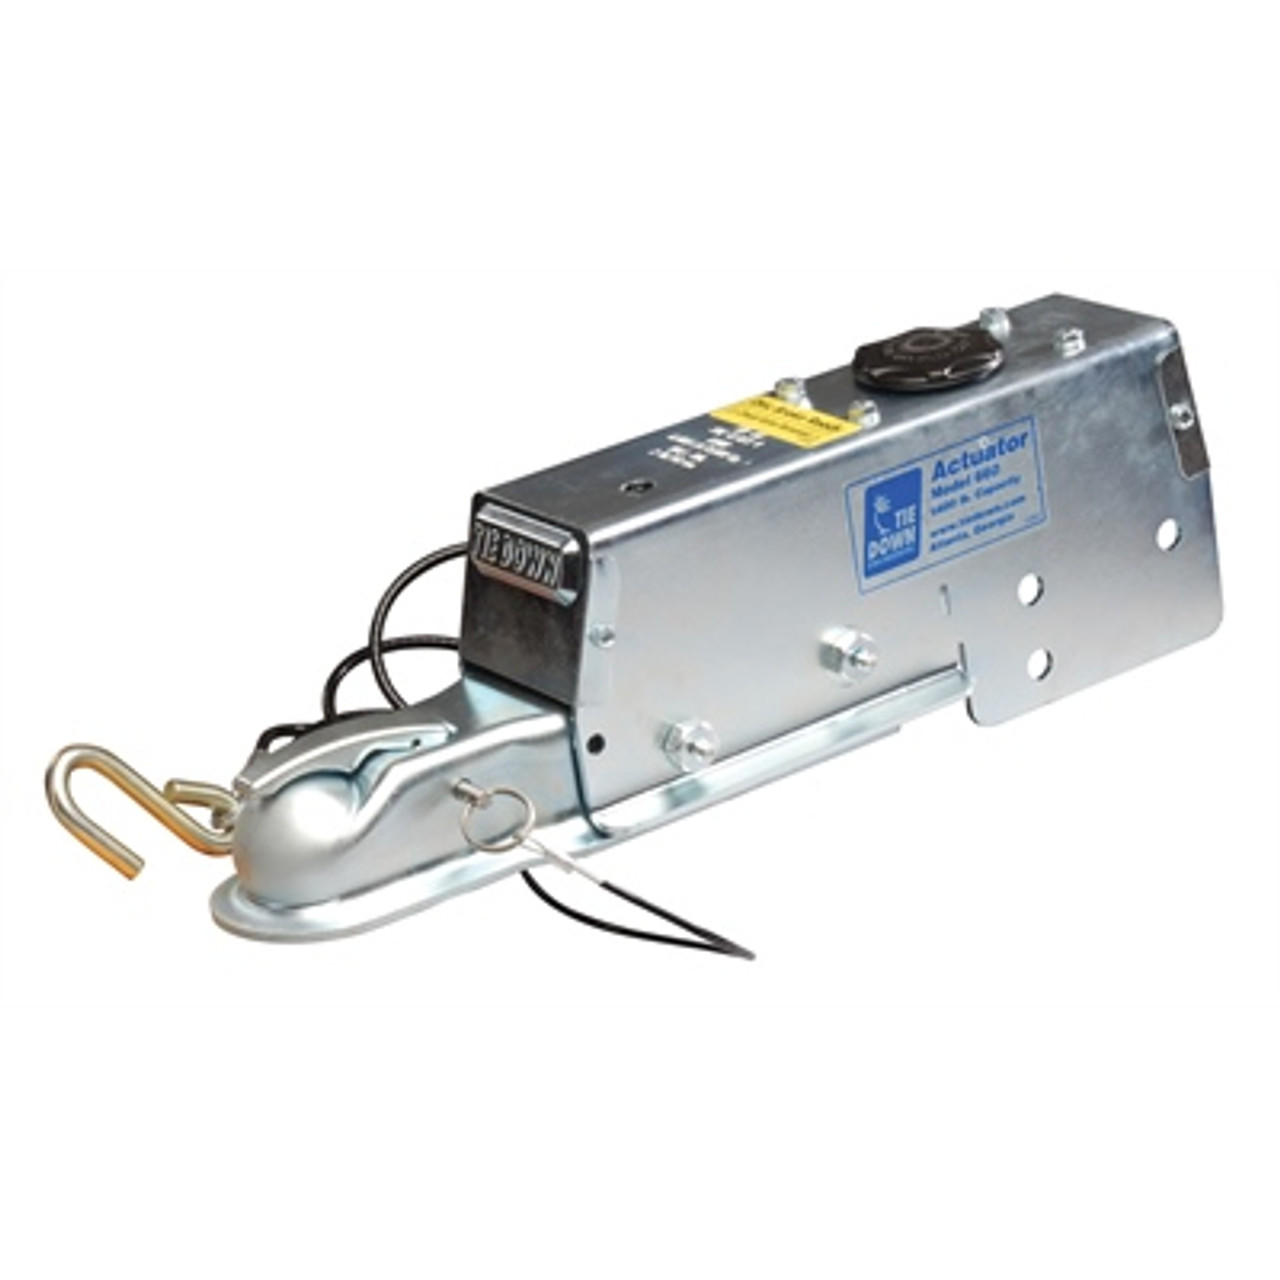 hight resolution of brake coupler tie down engineering model 660 actuator at champion trailers